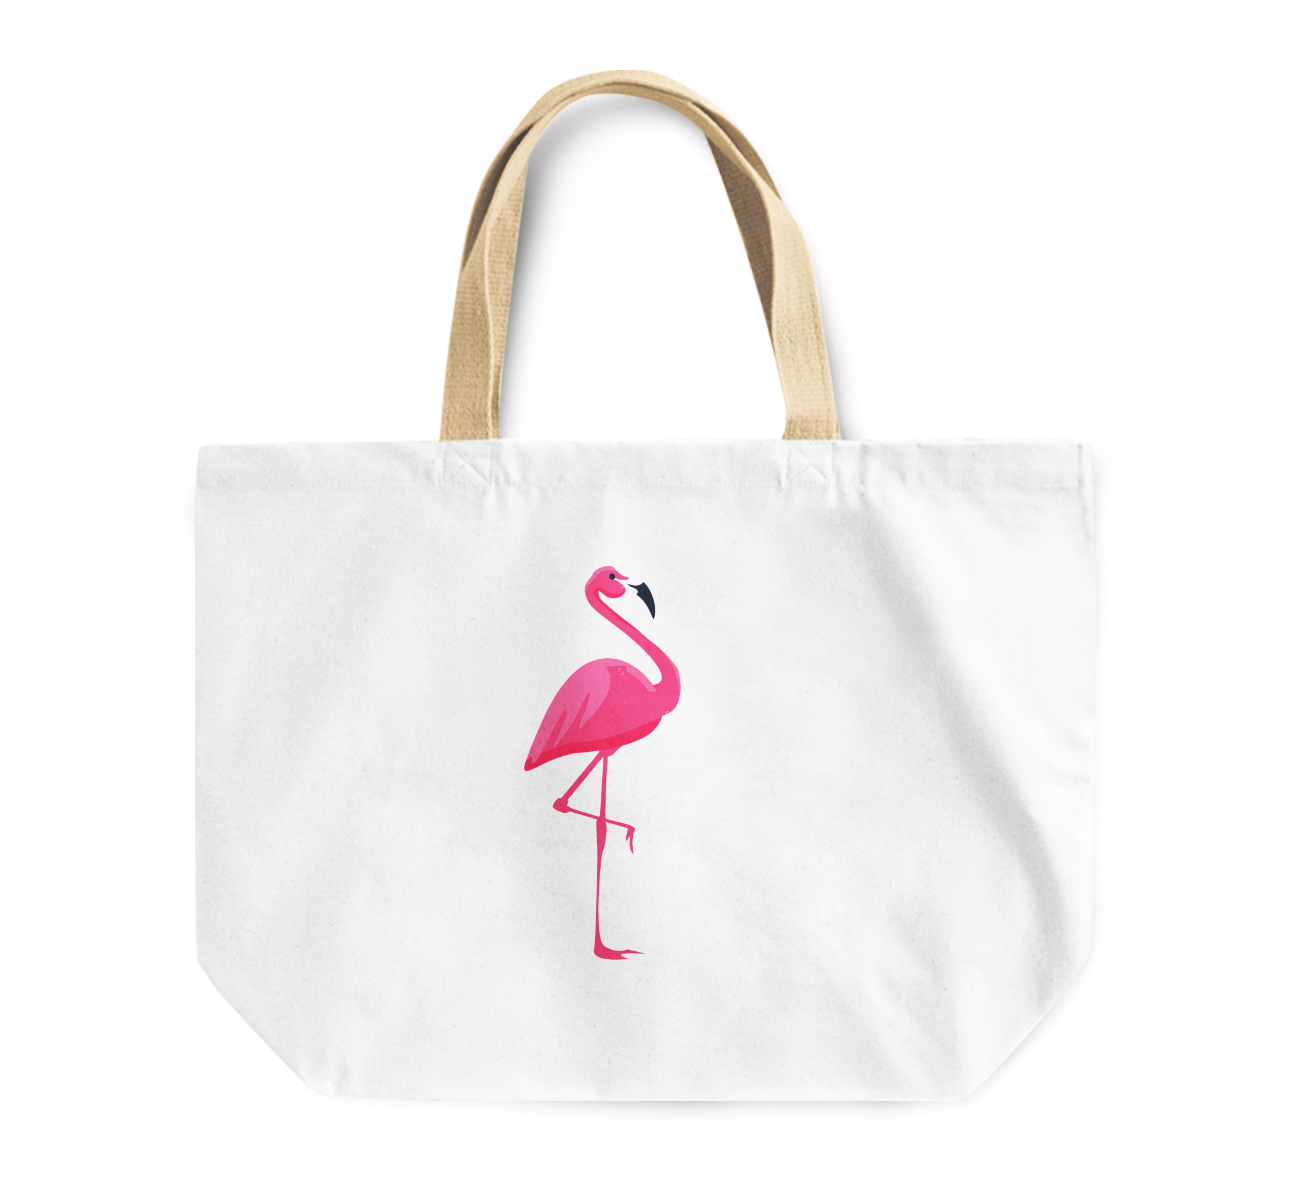 Tote Bag Pink Flamingo Reusable Shopping Bag By Loud Universe